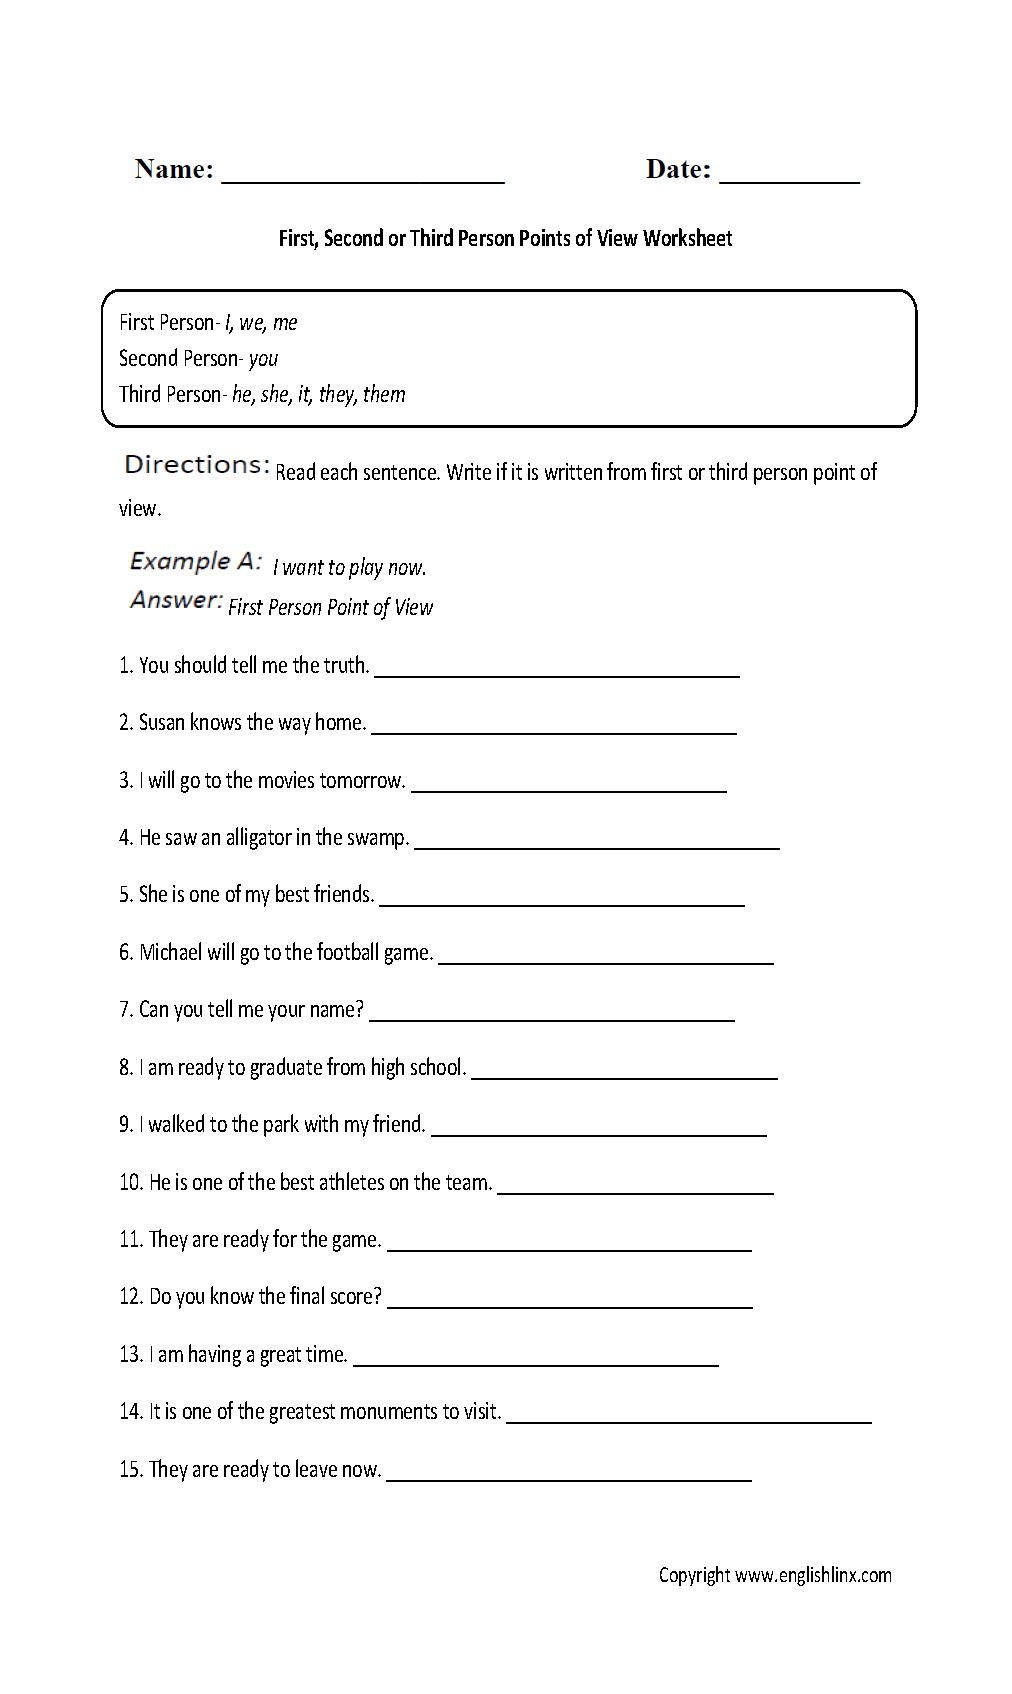 Weirdmailus  Nice Englishlinxcom  Point Of View Worksheets With Luxury Point Of View Worksheet With Awesome Sight Words For Preschoolers Worksheets Also D Shapes Worksheets Ks In Addition Worksheets Meaning And Four Times Table Worksheet As Well As Fraction Worksheet Grade  Additionally Mixture And Solution Worksheets From Englishlinxcom With Weirdmailus  Luxury Englishlinxcom  Point Of View Worksheets With Awesome Point Of View Worksheet And Nice Sight Words For Preschoolers Worksheets Also D Shapes Worksheets Ks In Addition Worksheets Meaning From Englishlinxcom